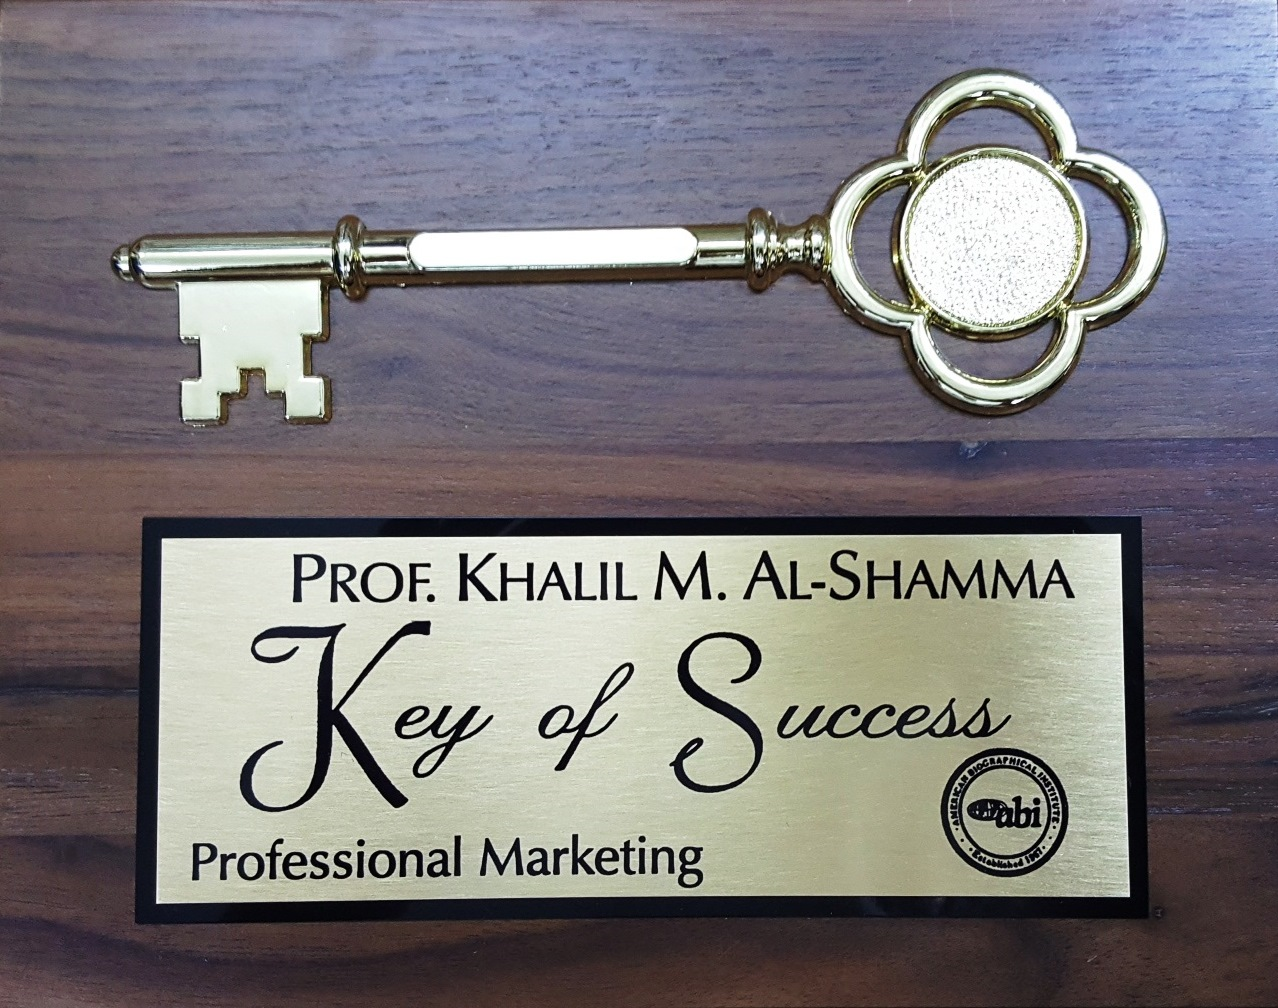 Keys of Success - Professional Marketing